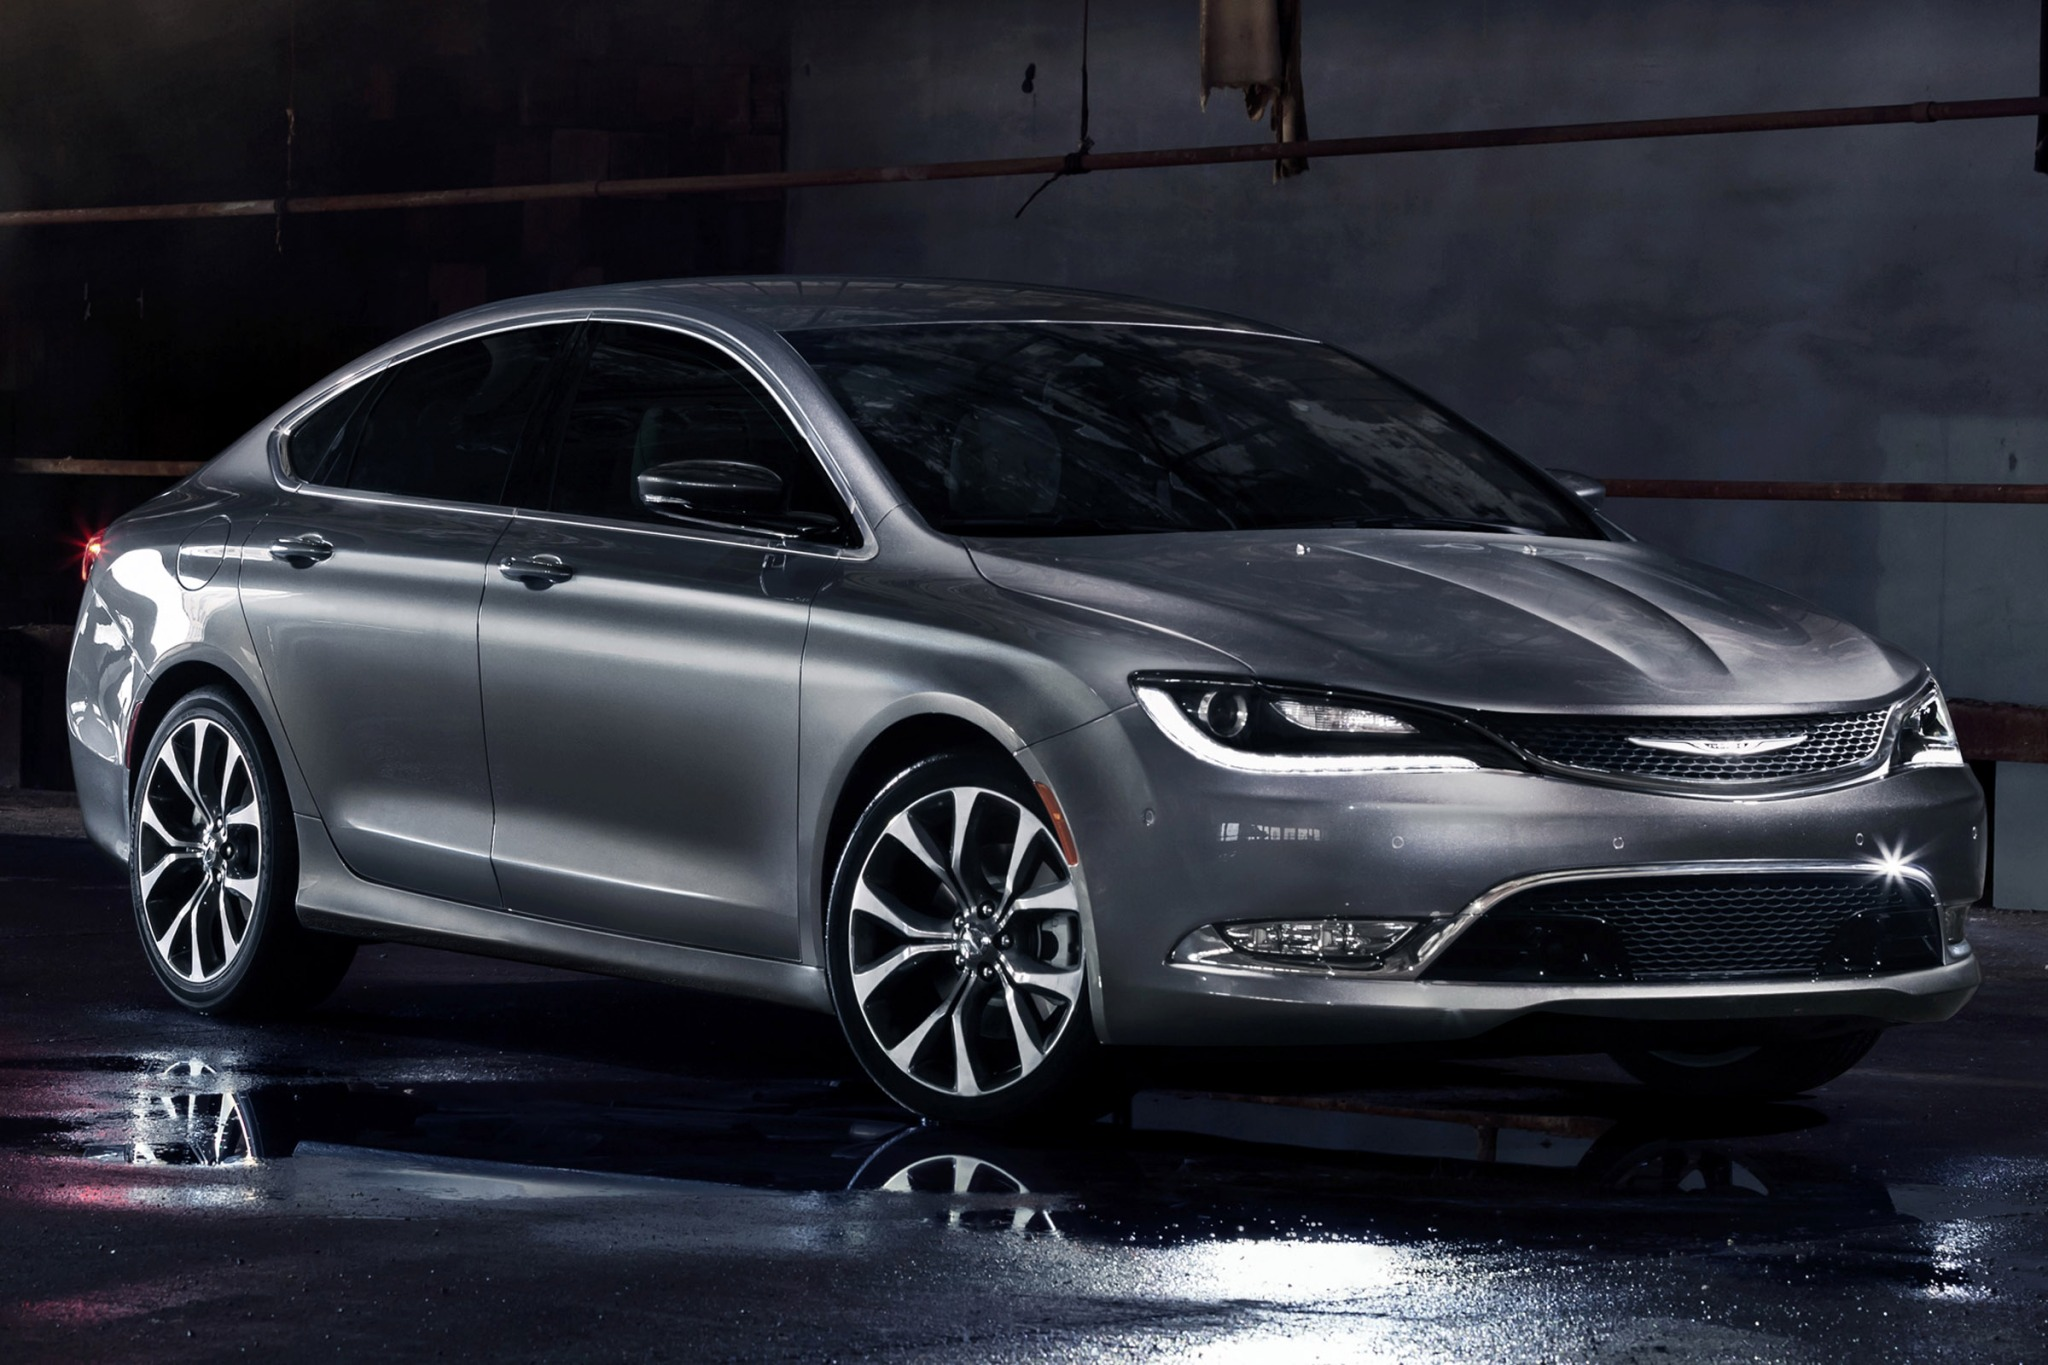 2015 Chrysler 200 C Sedan exterior #2